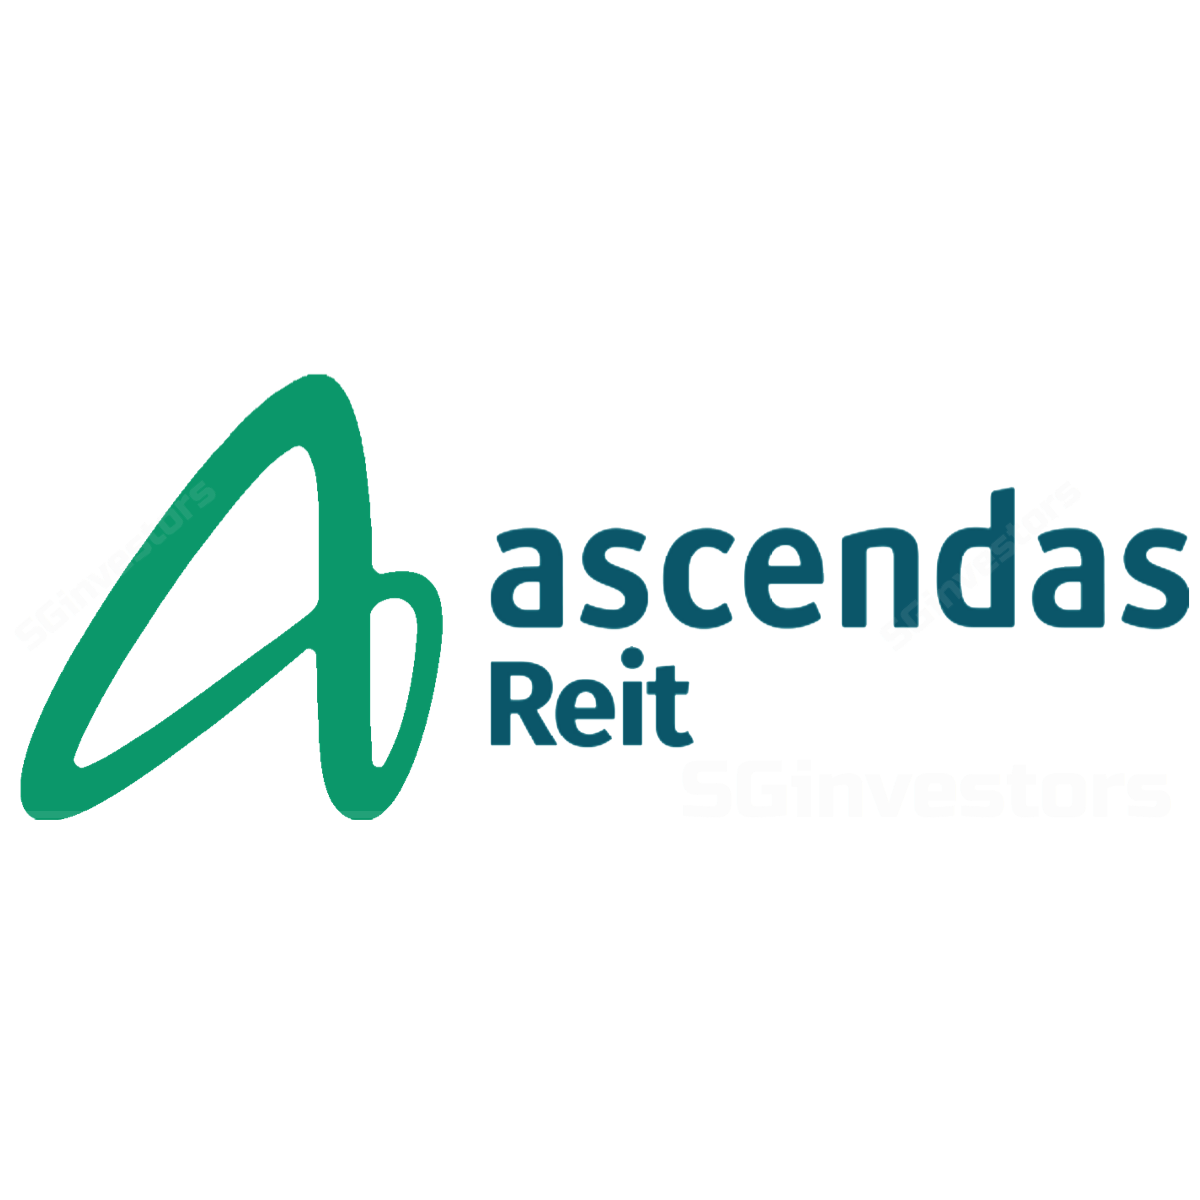 Ascendas REIT - DBS Vickers 2017-01-04: Takes three at a go!